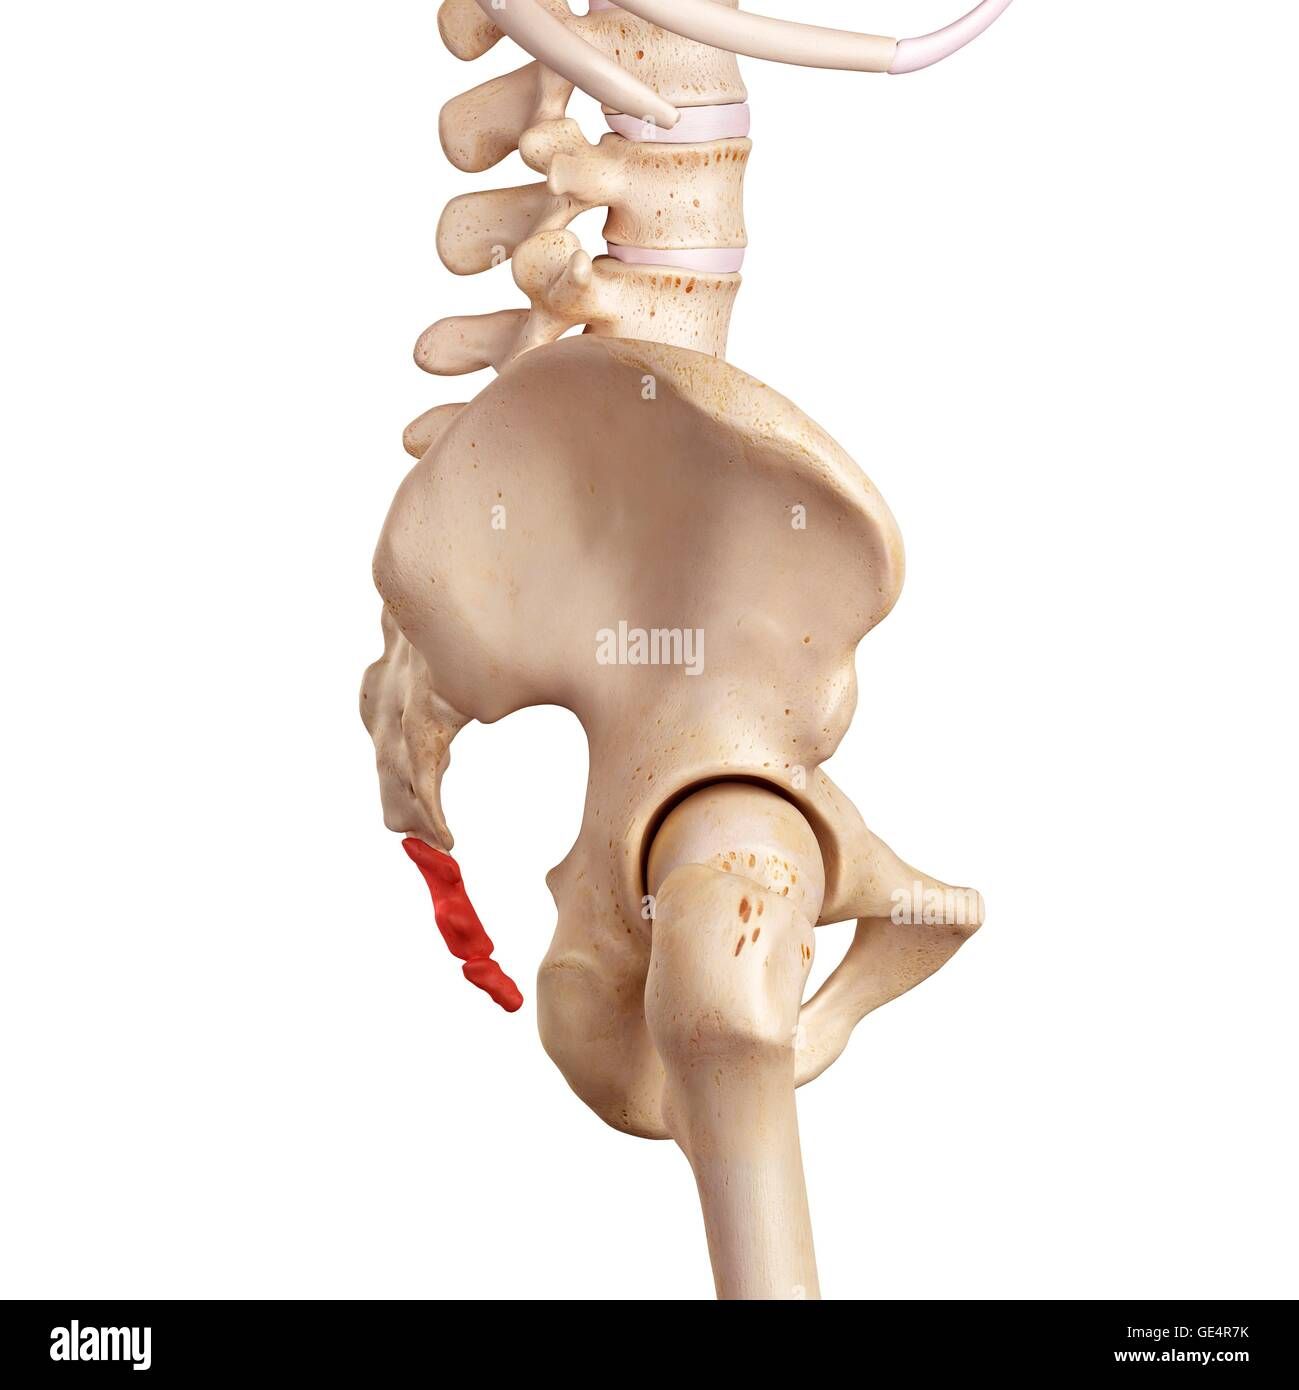 Coccyx Stock Photos & Coccyx Stock Images - Alamy